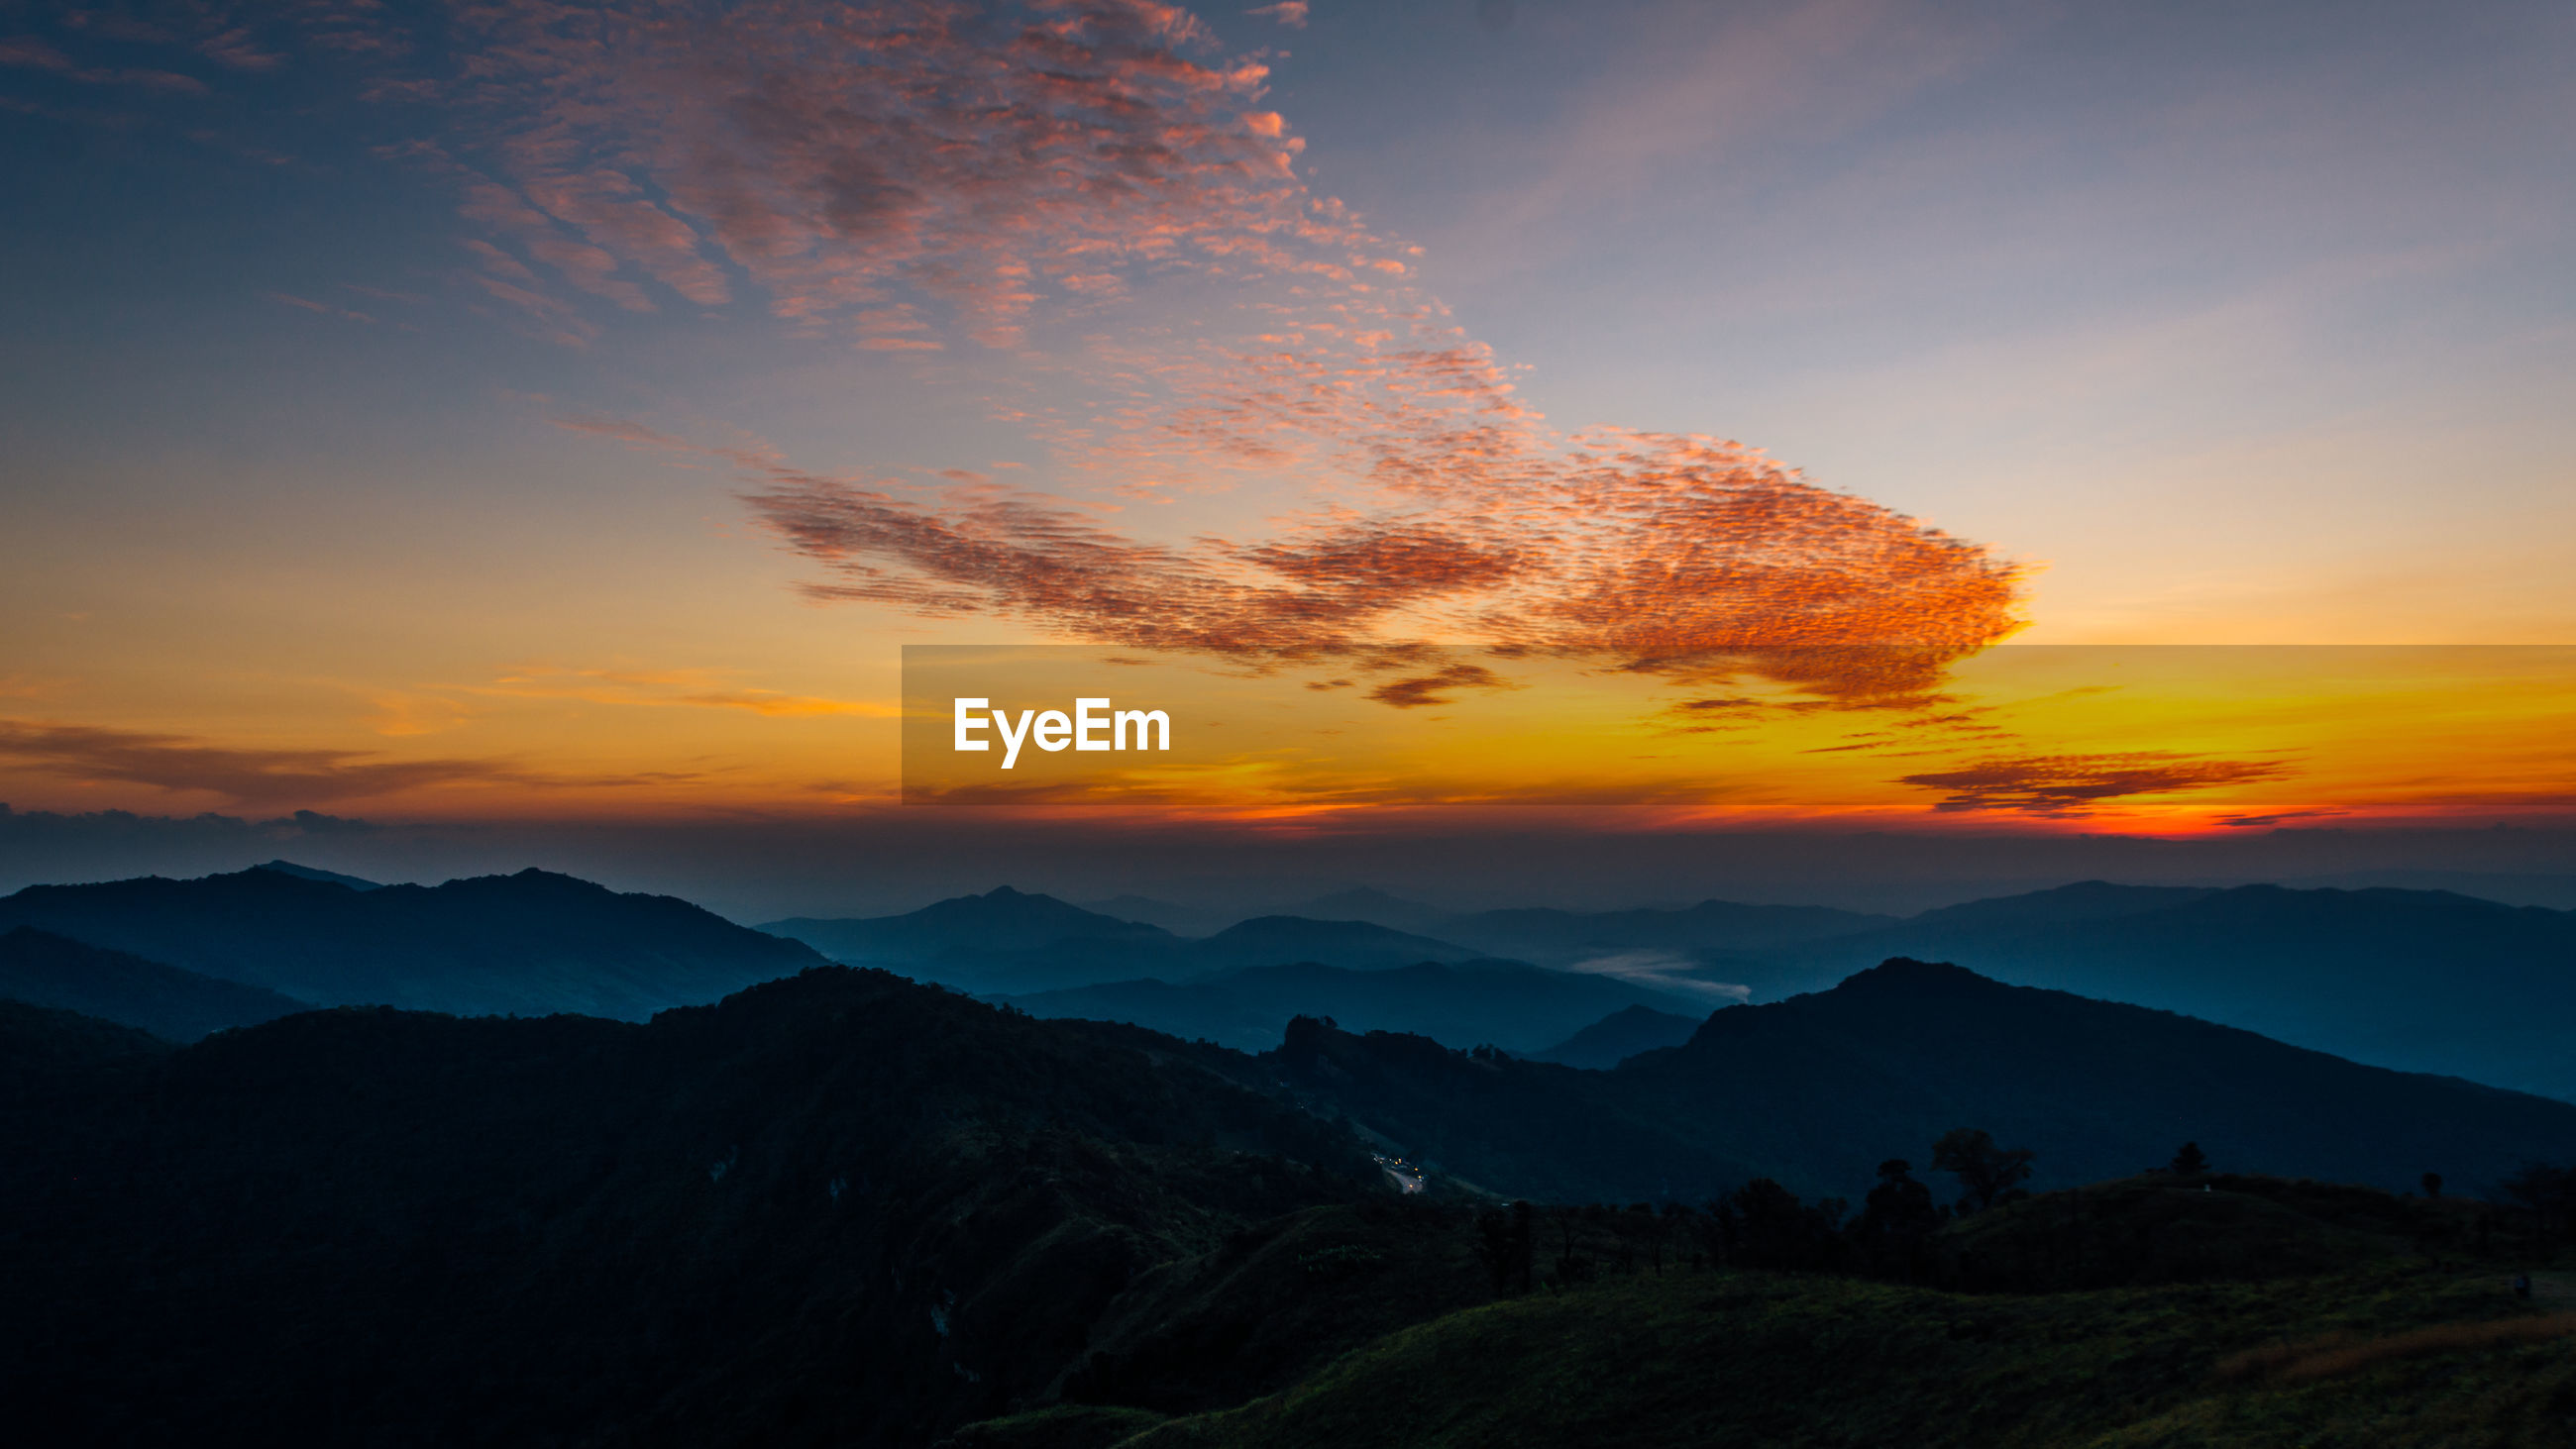 SCENIC VIEW OF SUNSET OVER MOUNTAIN